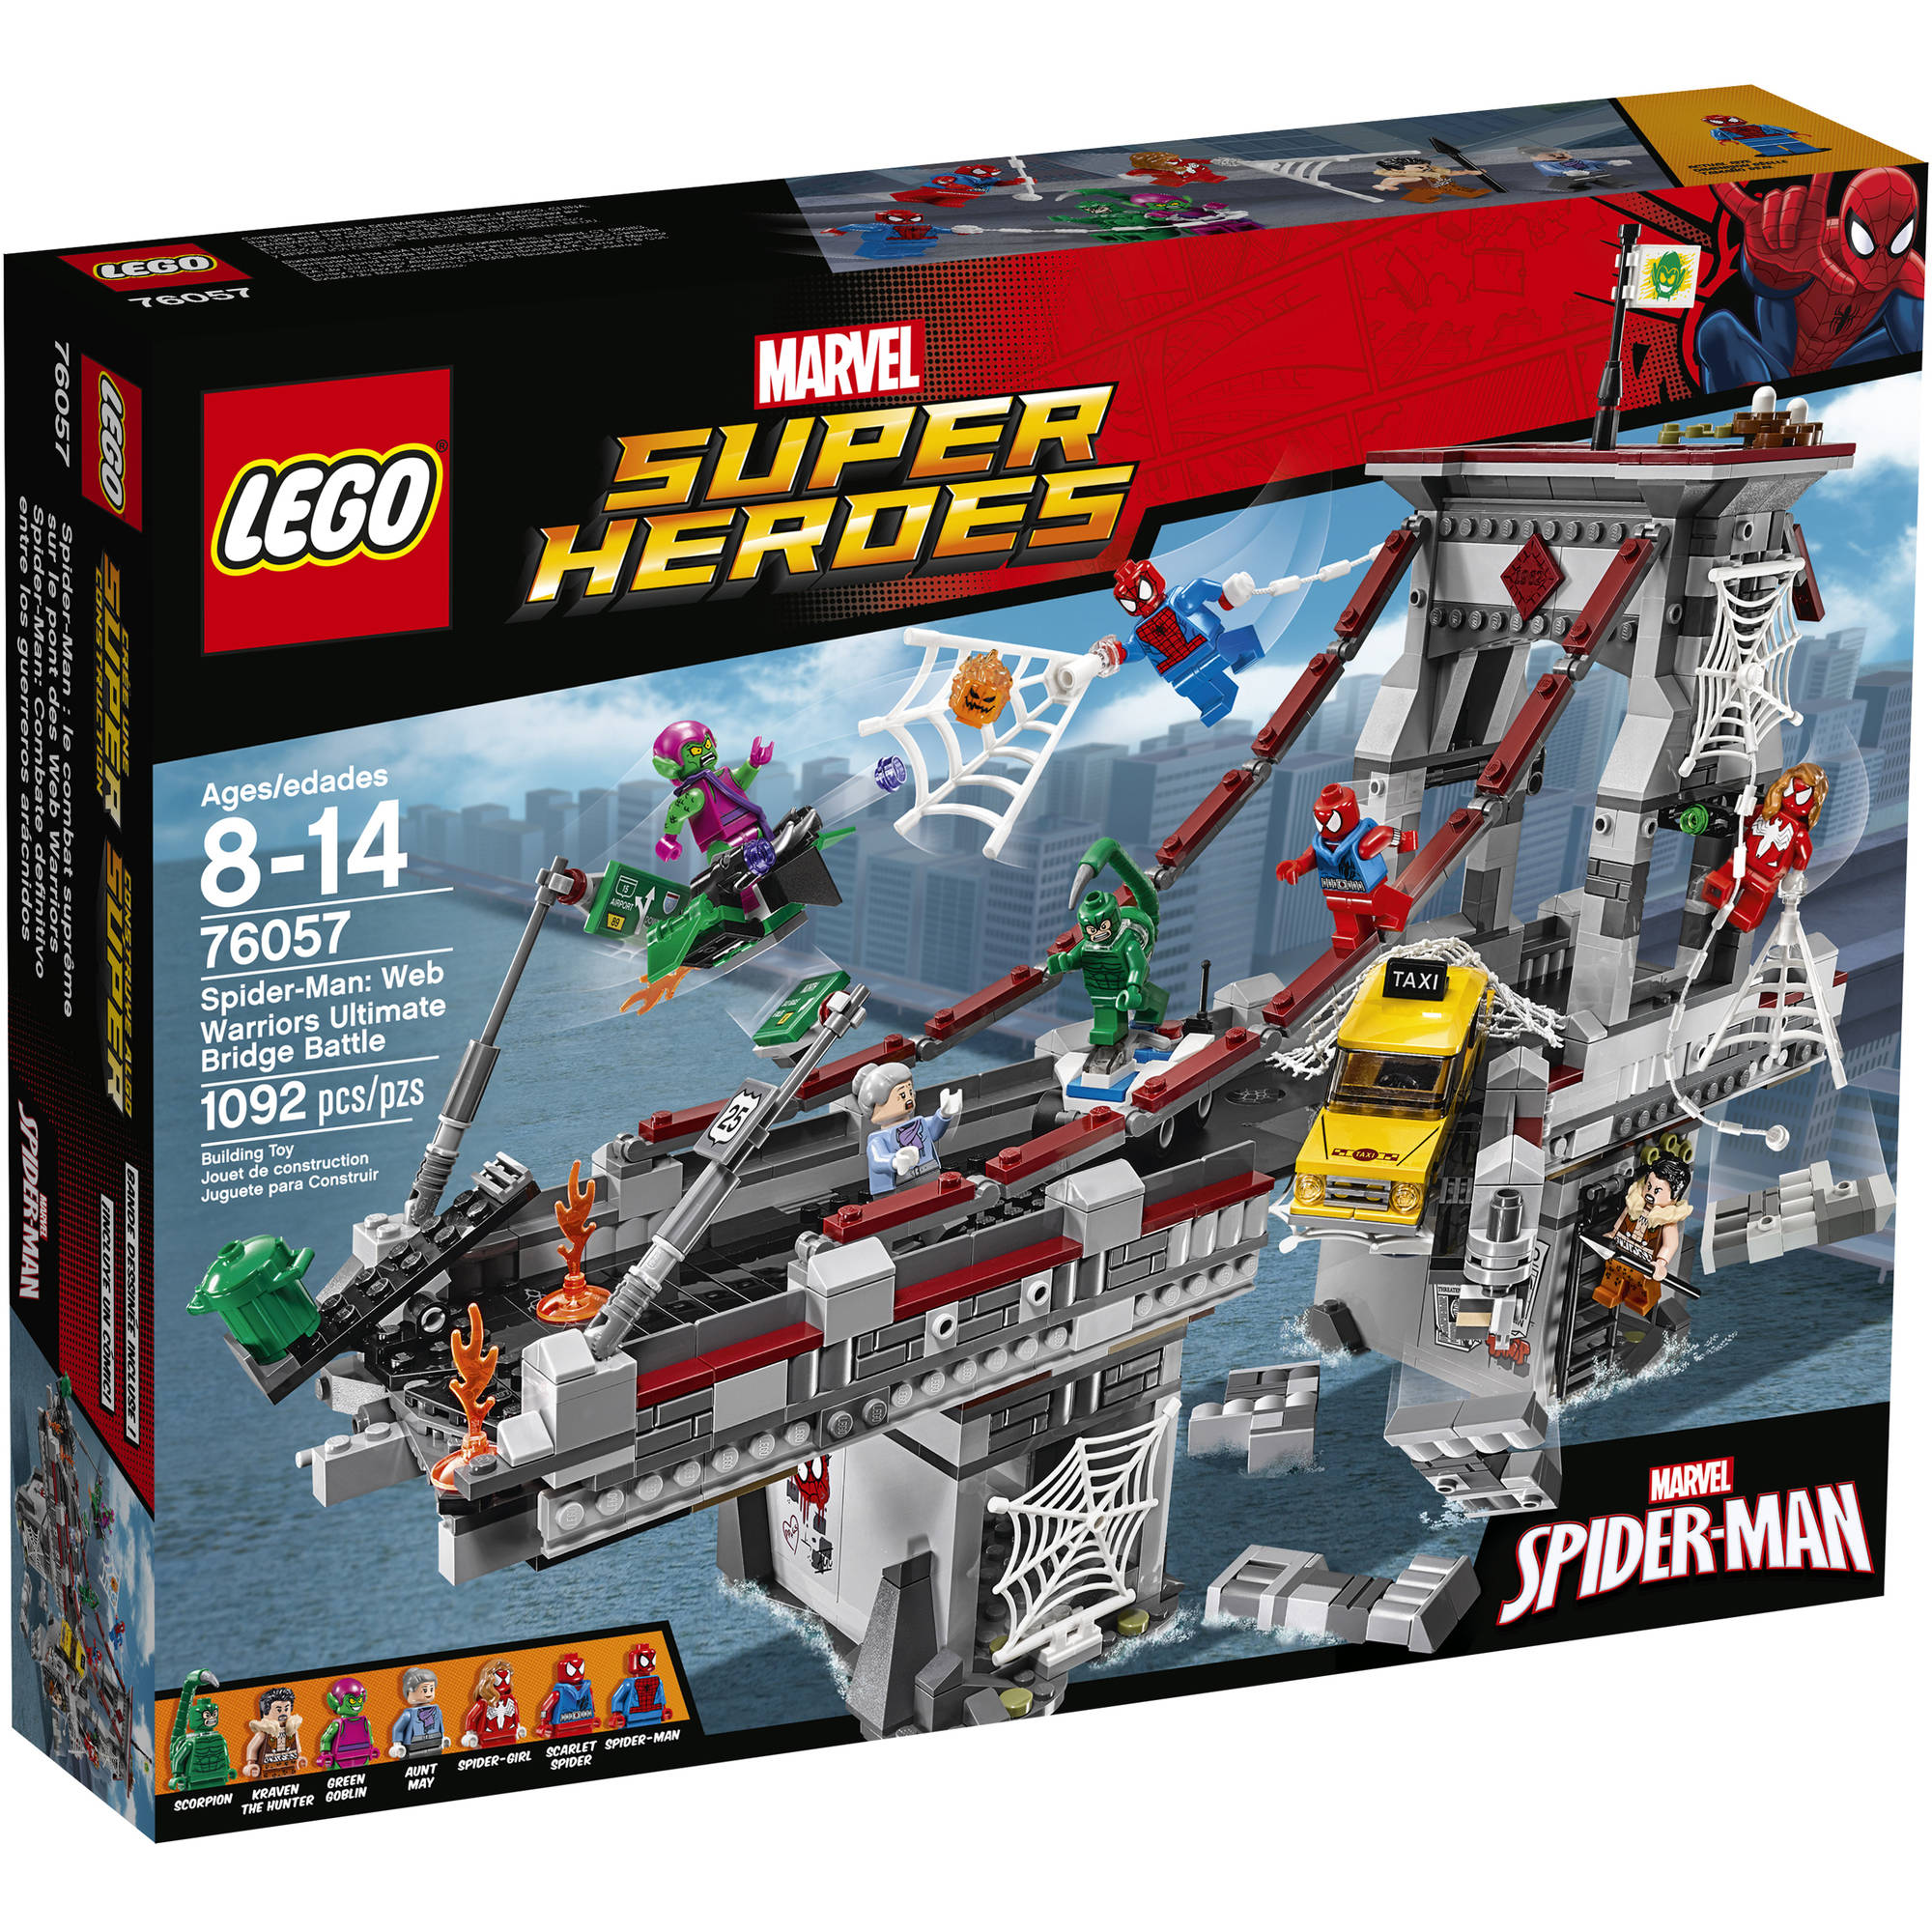 Lego Marvel Super Heroes Spider-Man: Web Warriors Ultimate Bridge Battle, 76057 by LEGO Systems, Inc.